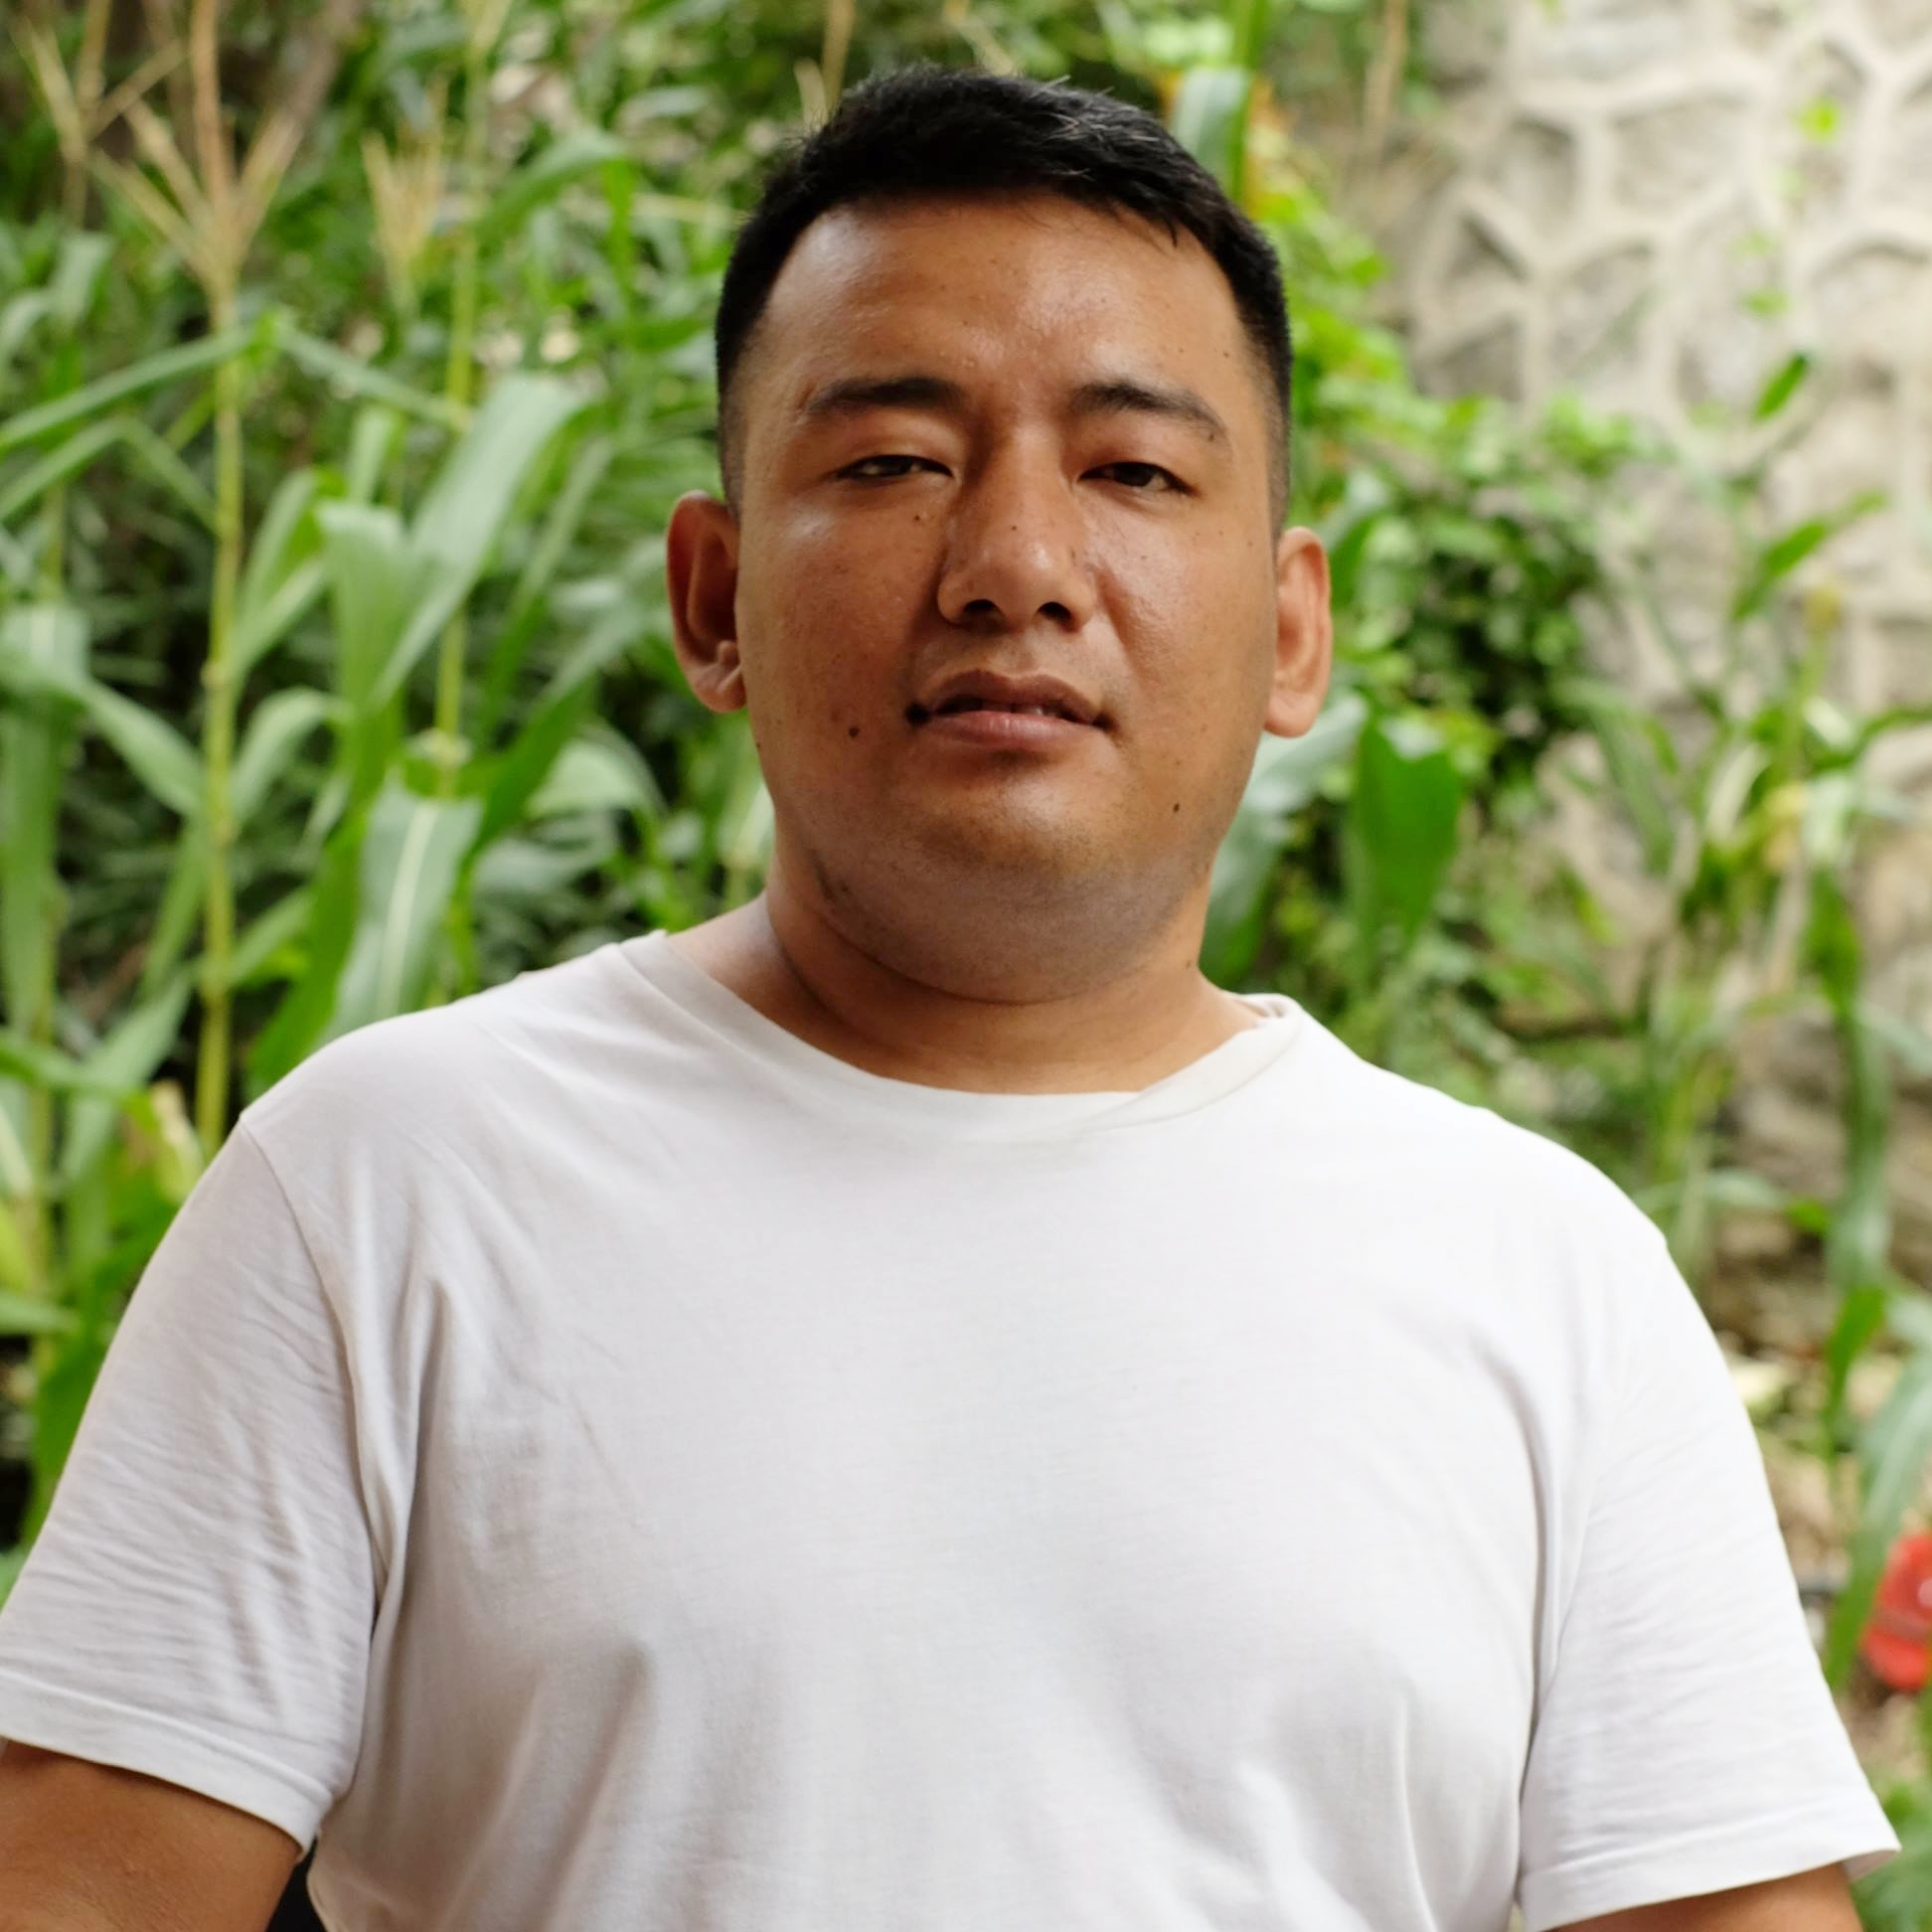 Mr. Shyam Gurung  General Secretary  Shyam Gurung grew up in Kathmandu, Nepal. He is an active member of Manang Marshyangdi football club. He is also an active social worker and always wants to help others.